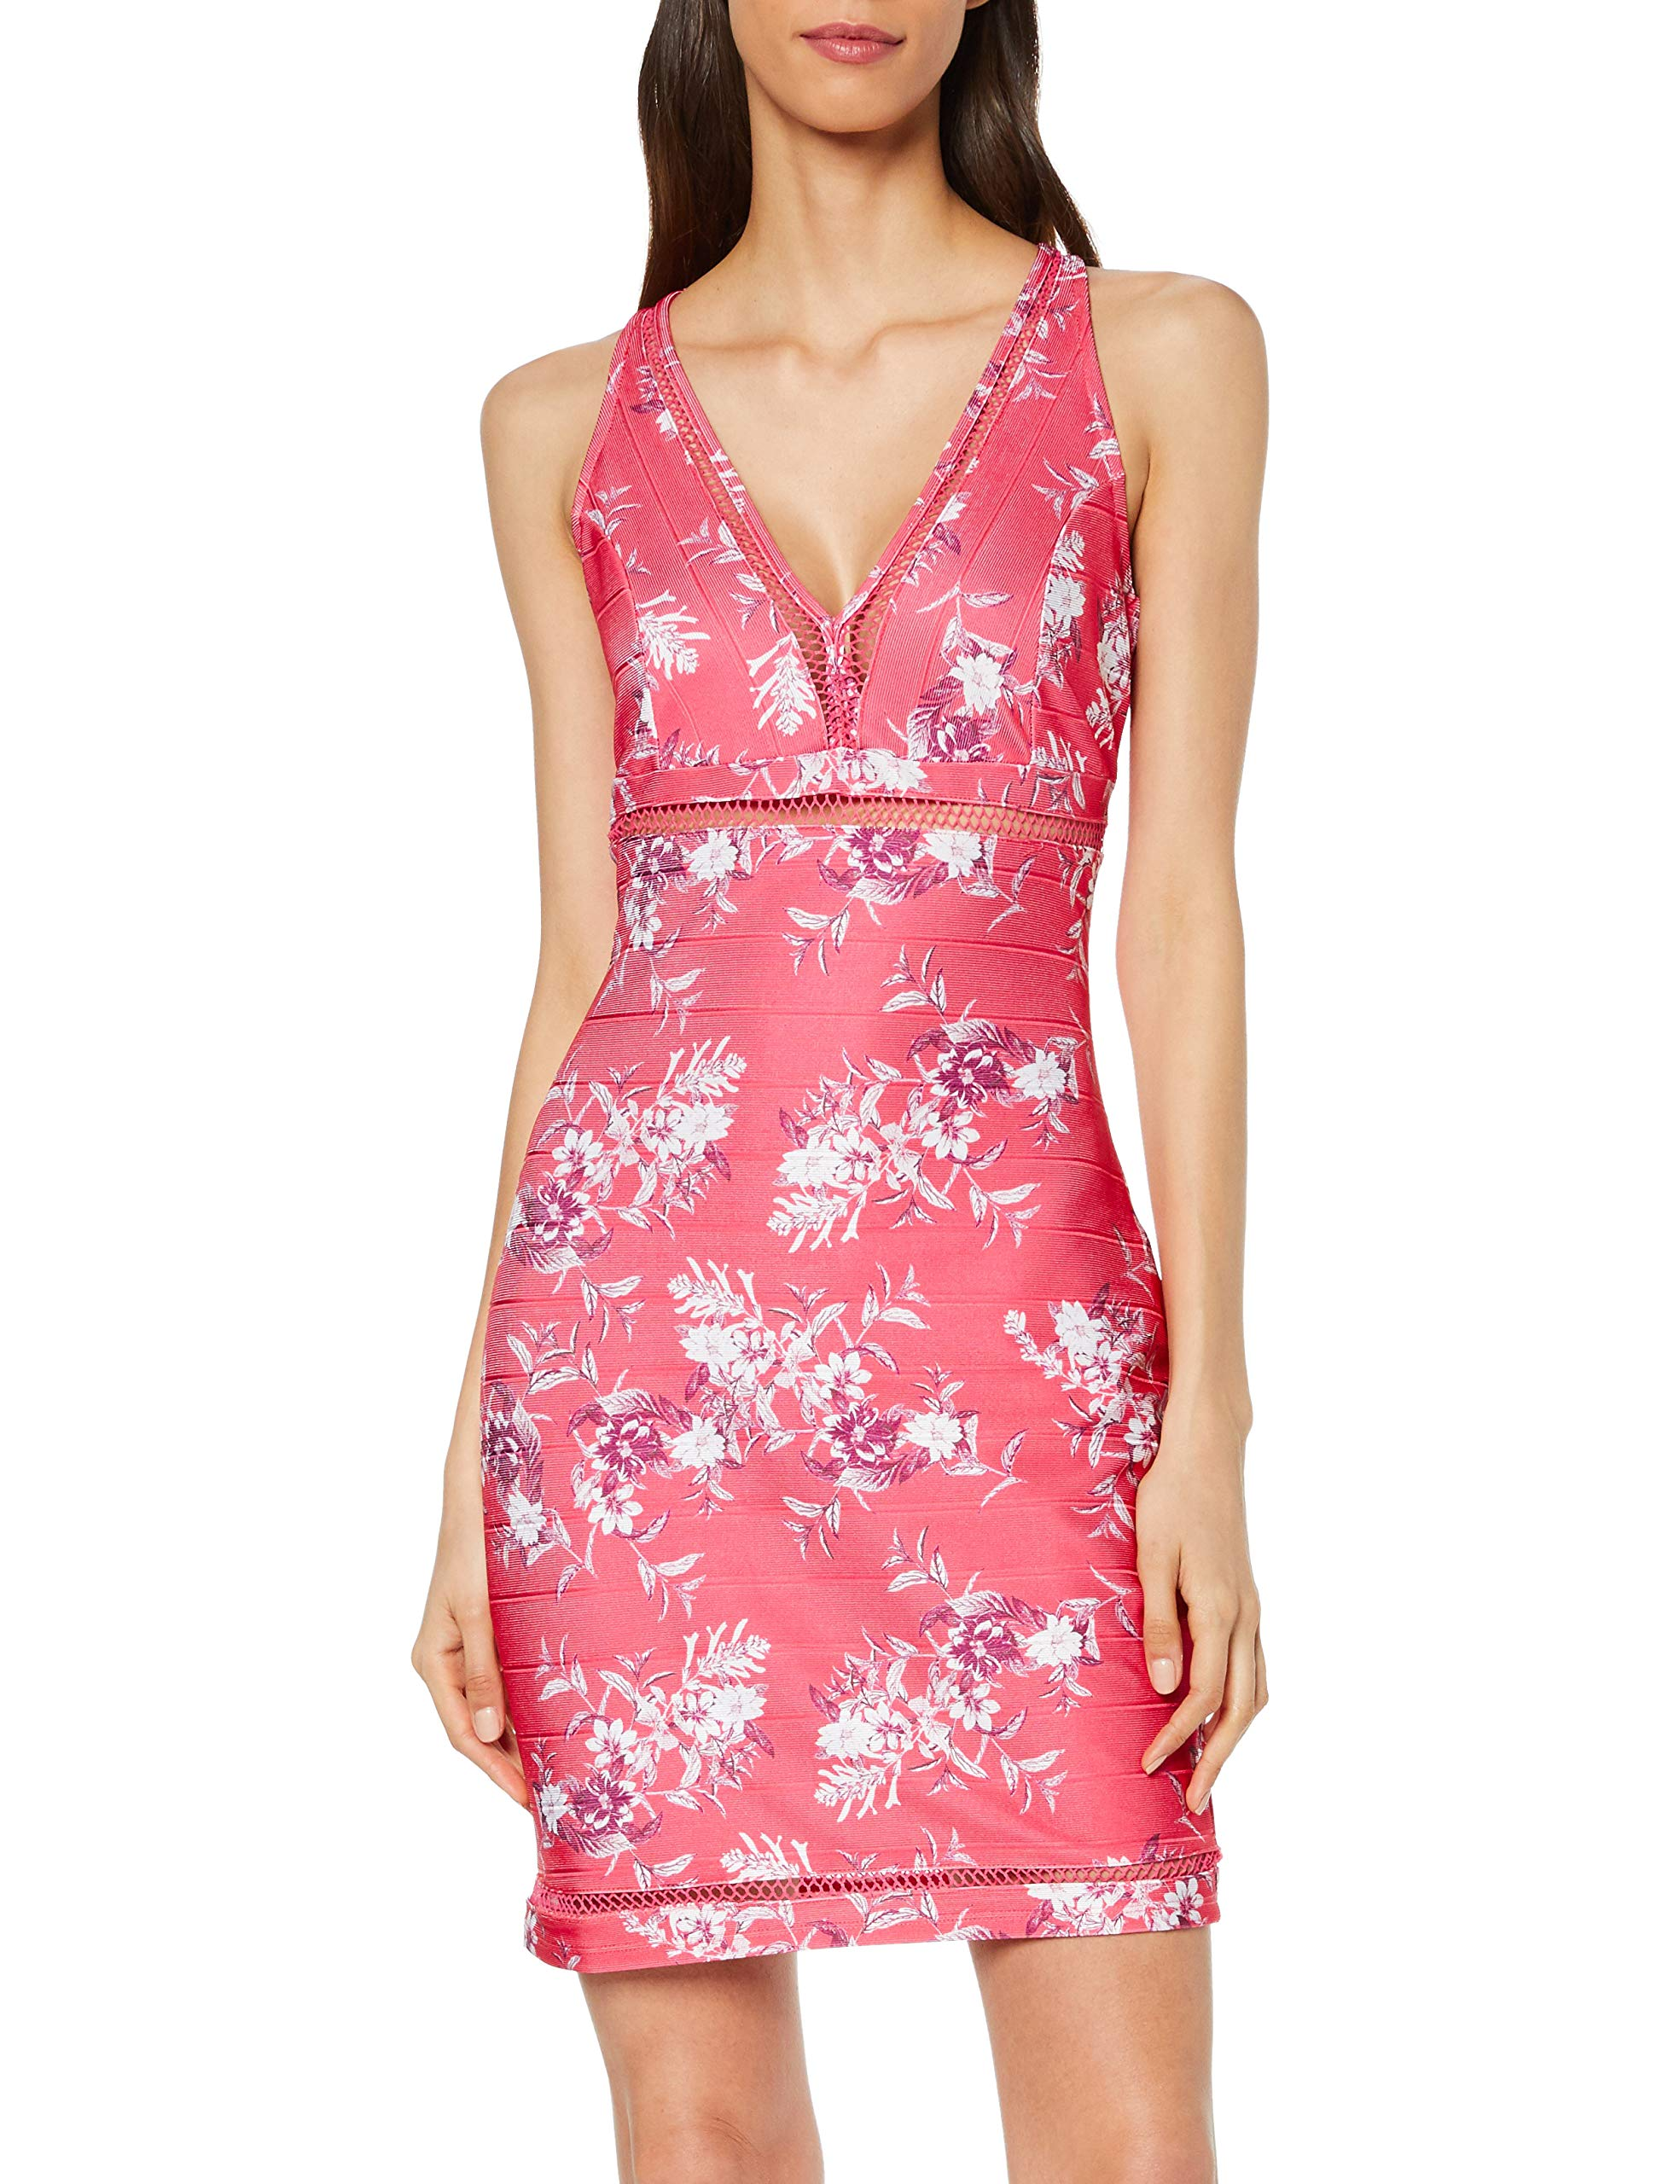 Pink Guess RobeMulticolorevintage Dress Flowers Malica P49fLarge Femme rdQCths